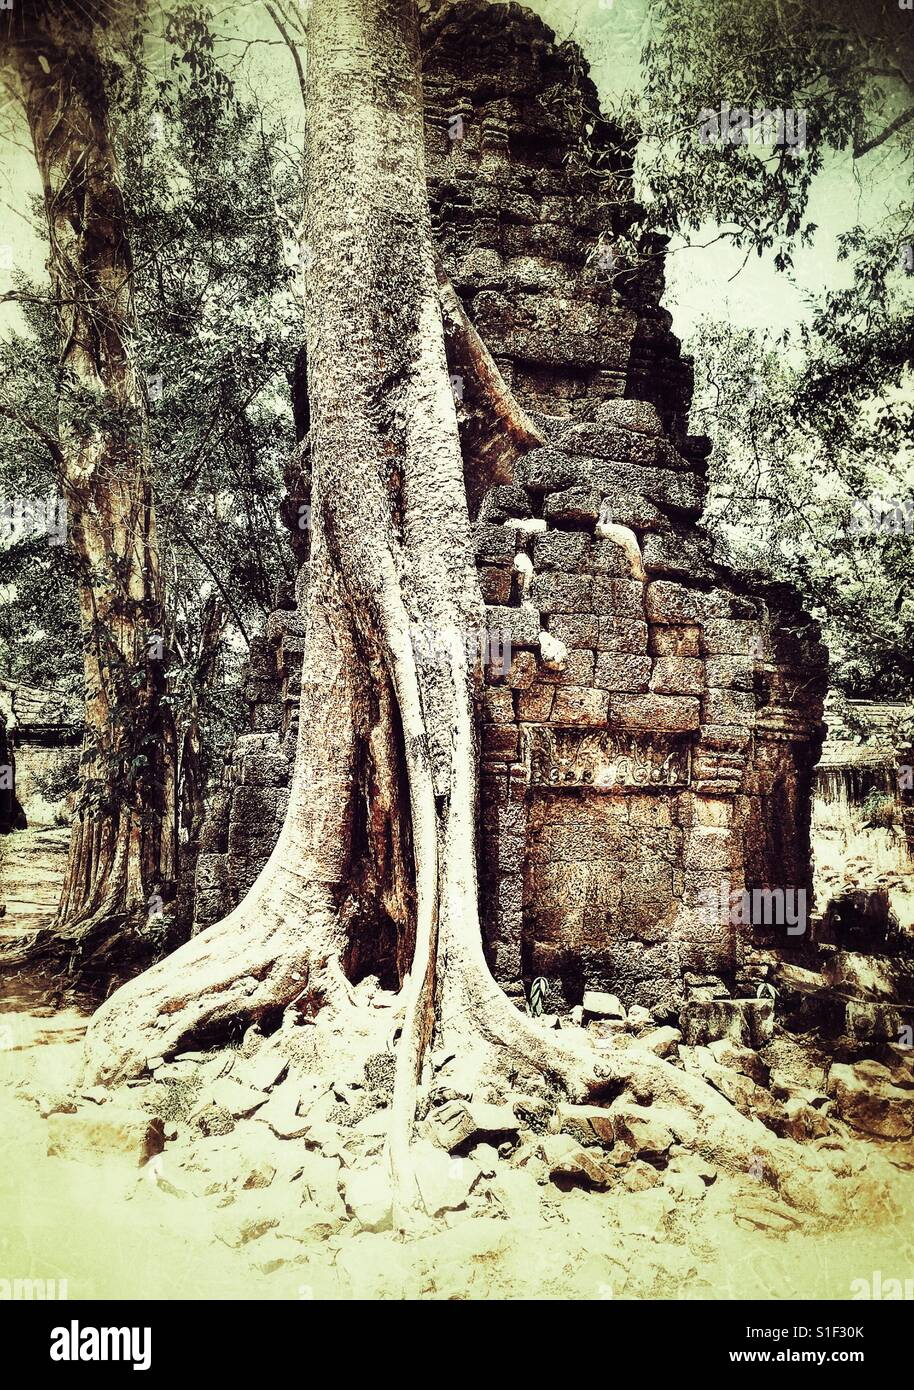 Exposed tree roots growing over ruined temple at Angkor wat Cambodia - Stock Image